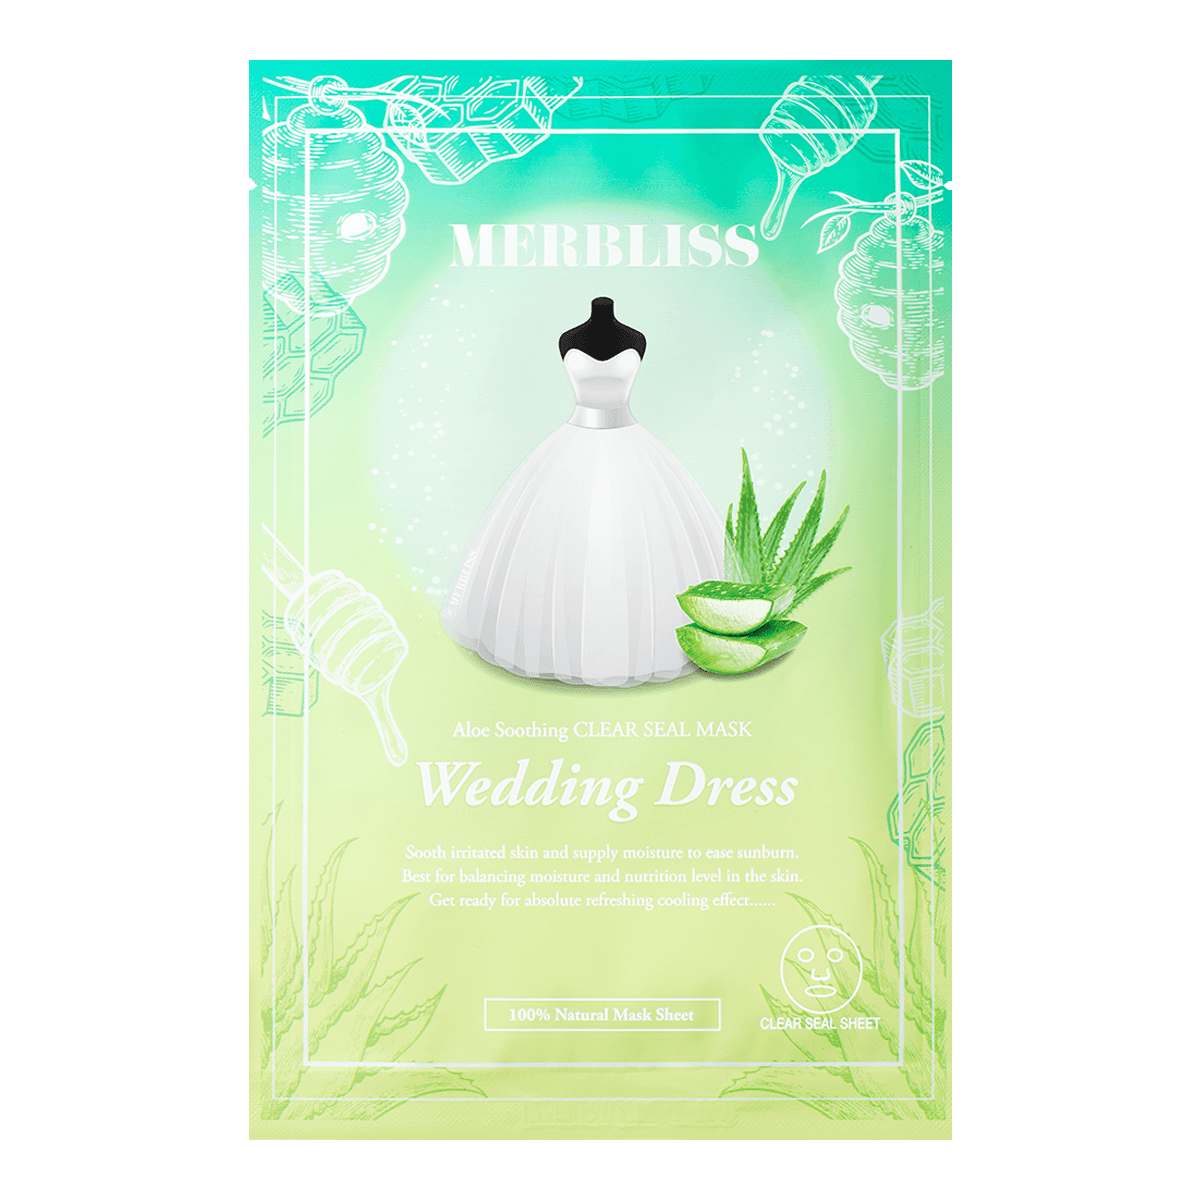 Yamibuy.com:Customer reviews:MERBLISS Wedding Dress Aloe Soothing Clear Seal Mask 1 Sheet